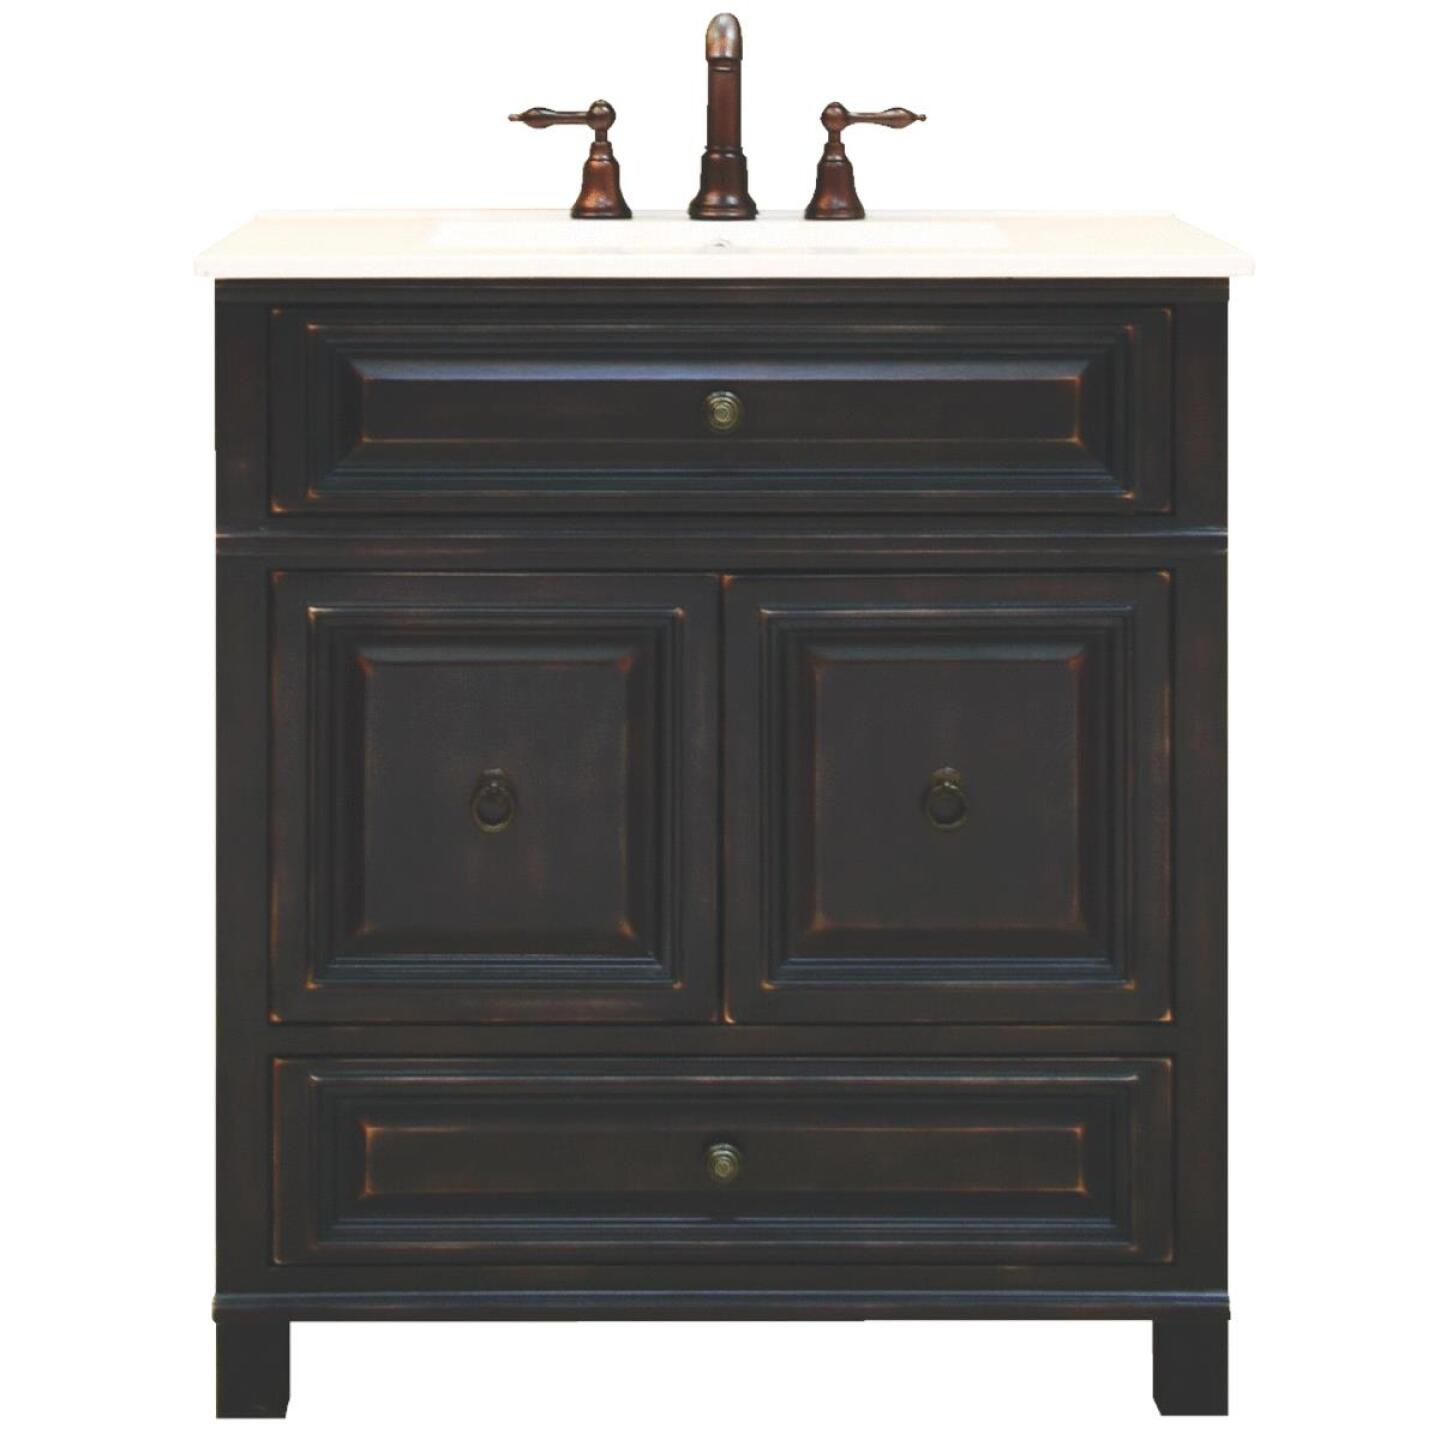 Sunny Wood Barton Hill Black Onyx 30 In. W x 34 In. H x 21 In. D Vanity Base, 2 Door/1 Drawer Image 93